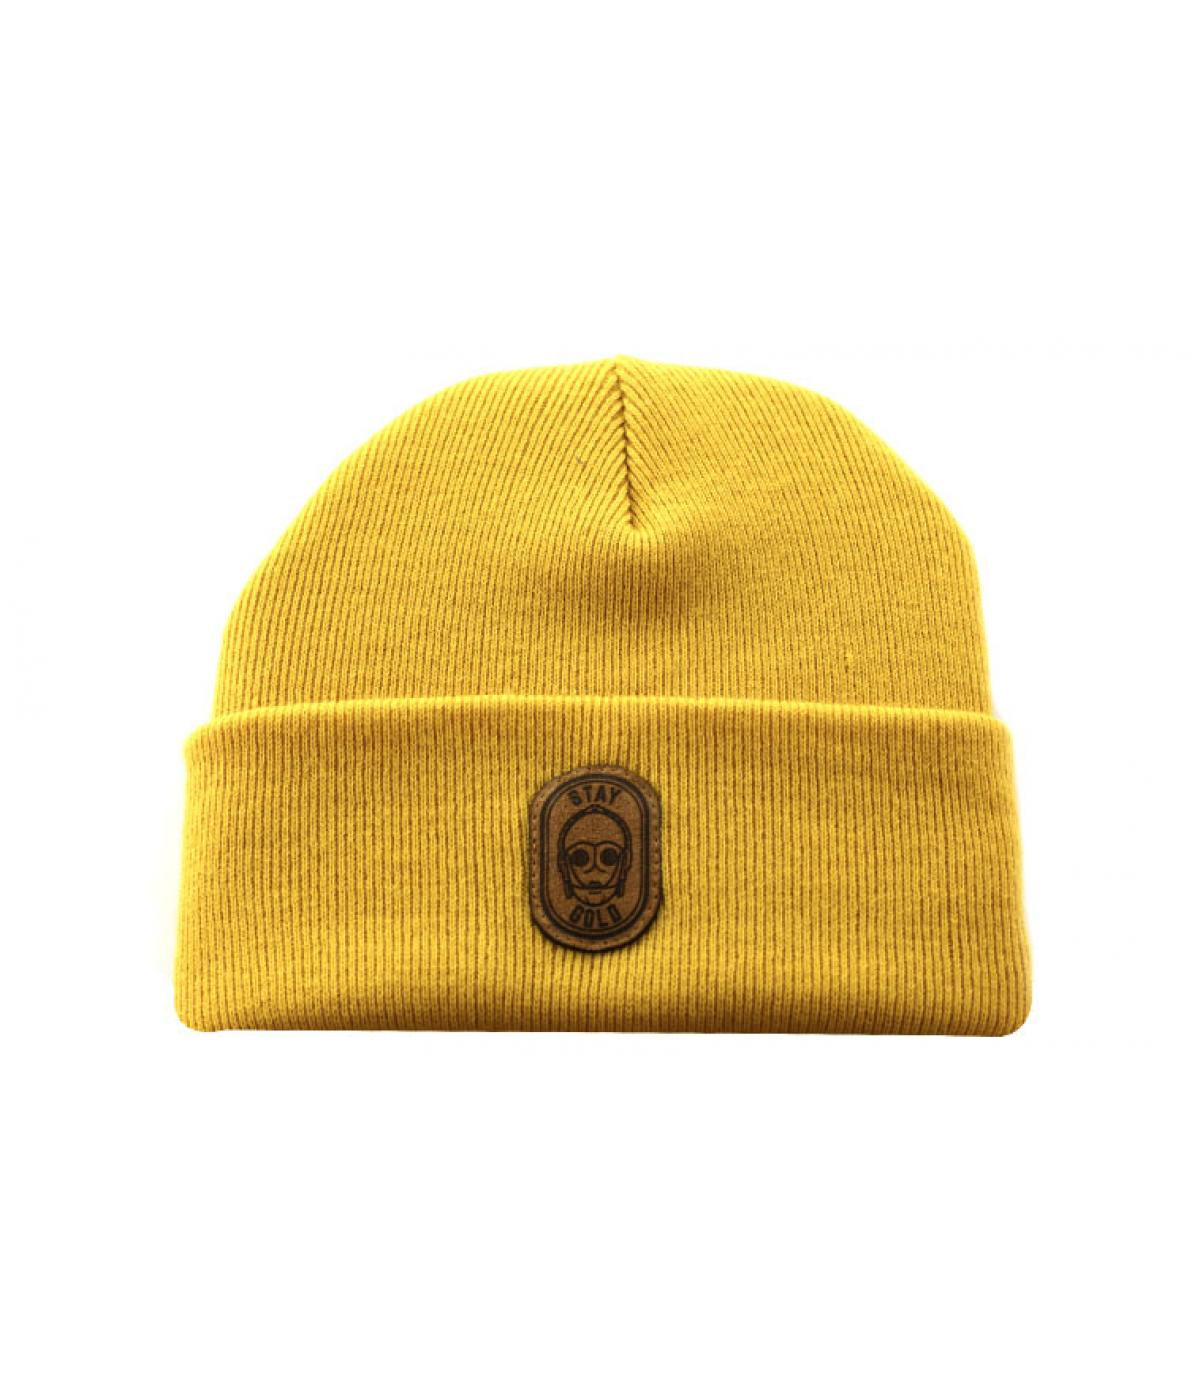 Détails Beanie Stay Gold mustard - image 2